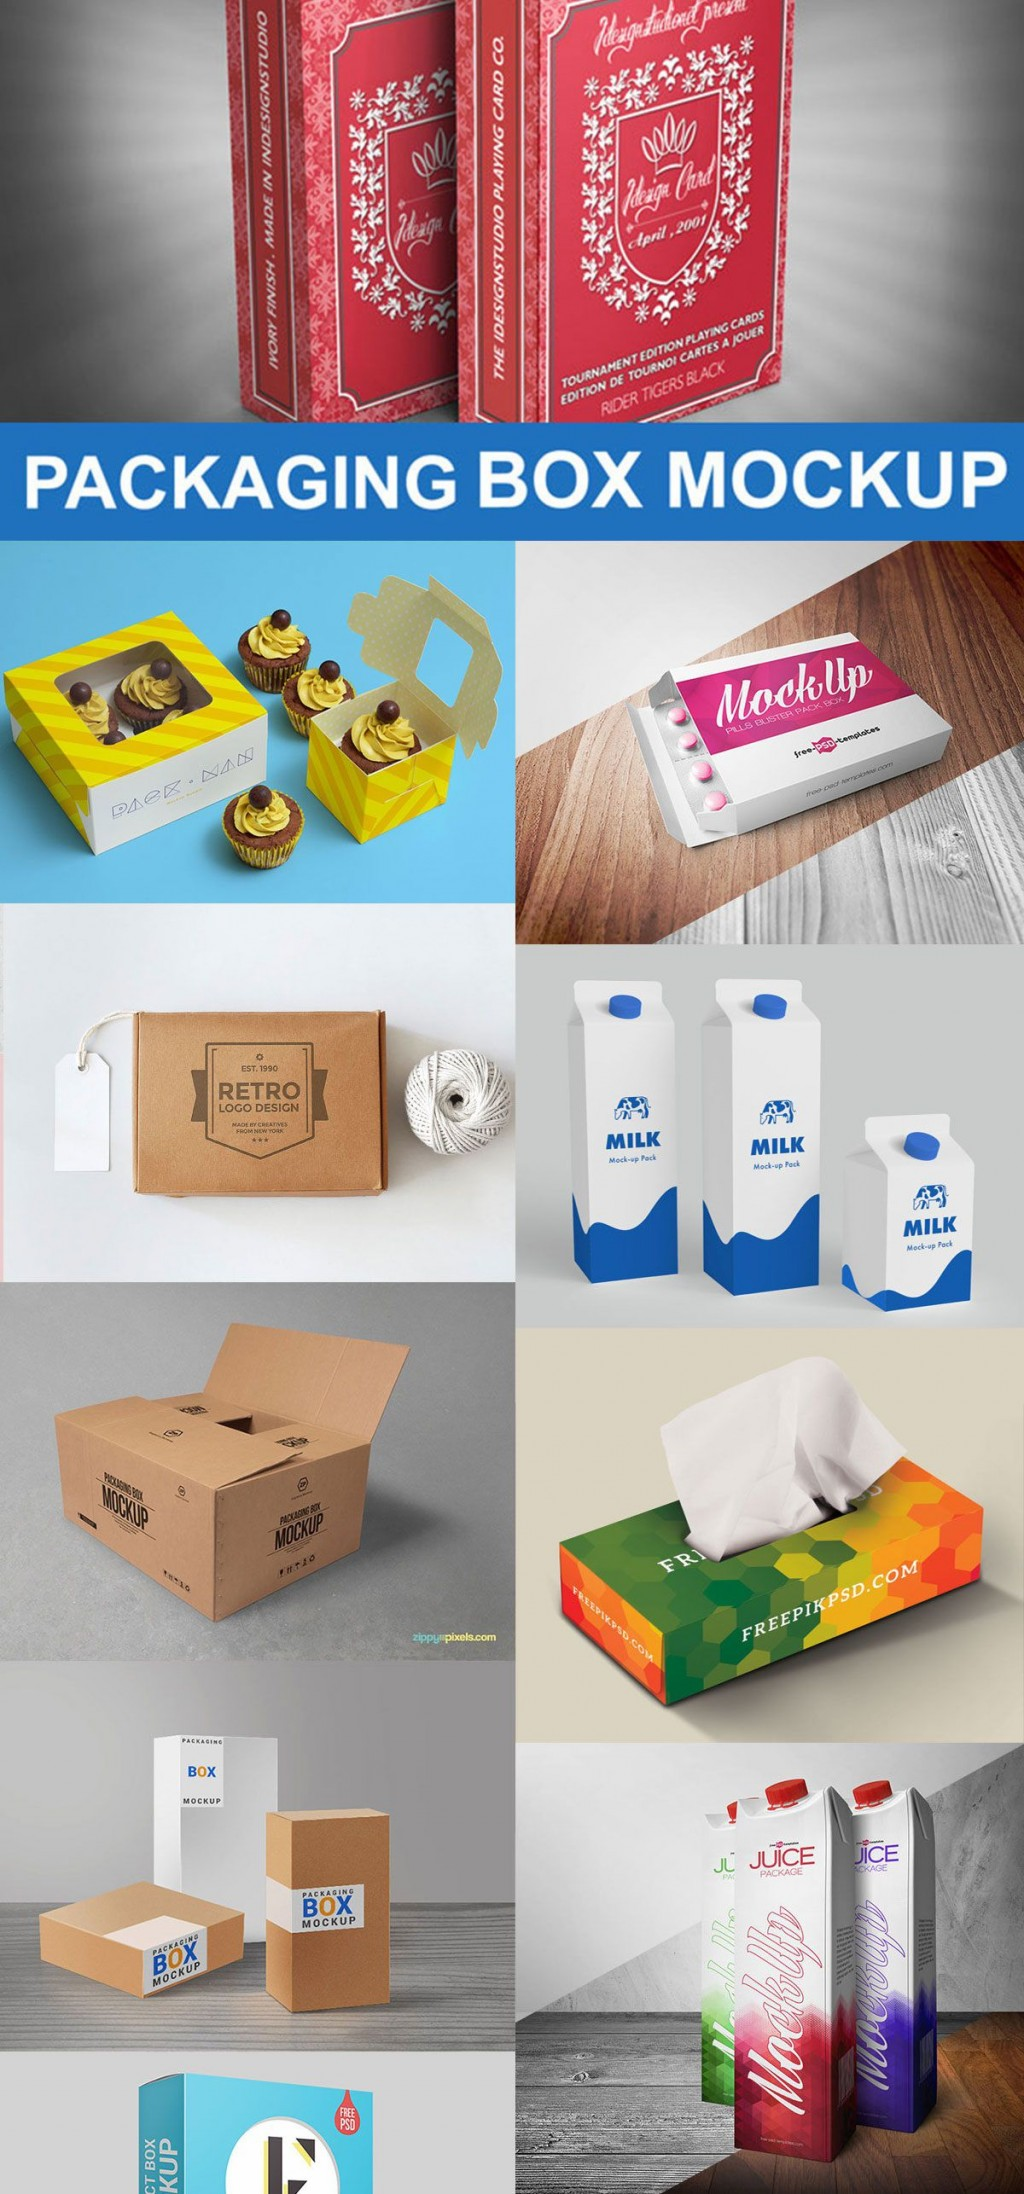 002 Archaicawful Box Design Template Free Highest Clarity  Text Download PackagingLarge